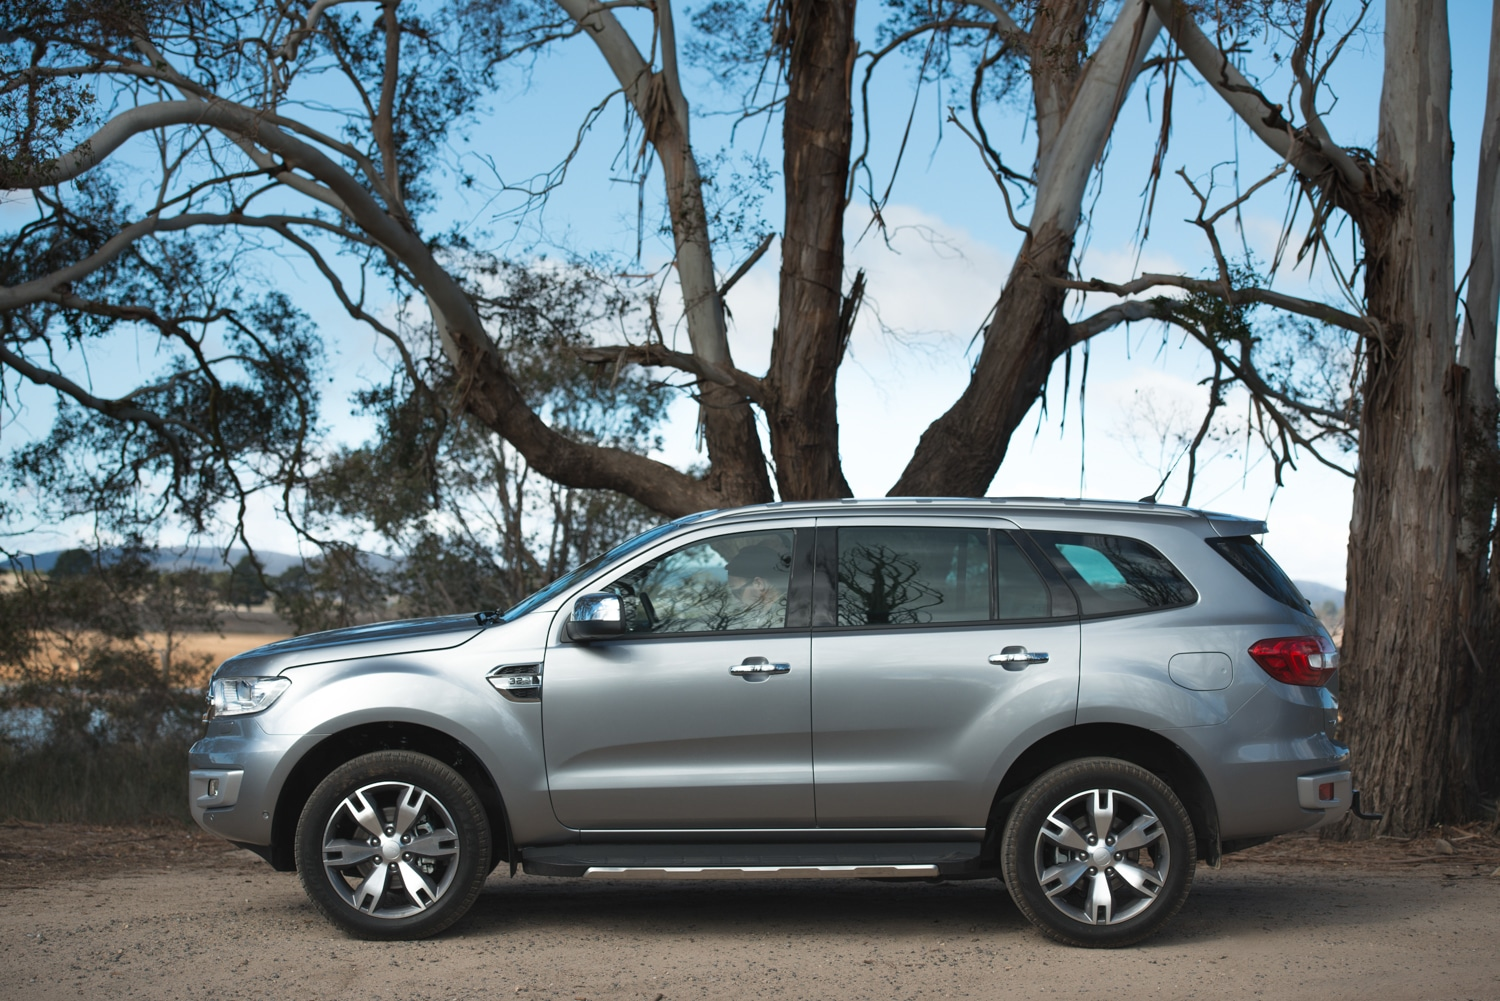 ford everest car under the tree